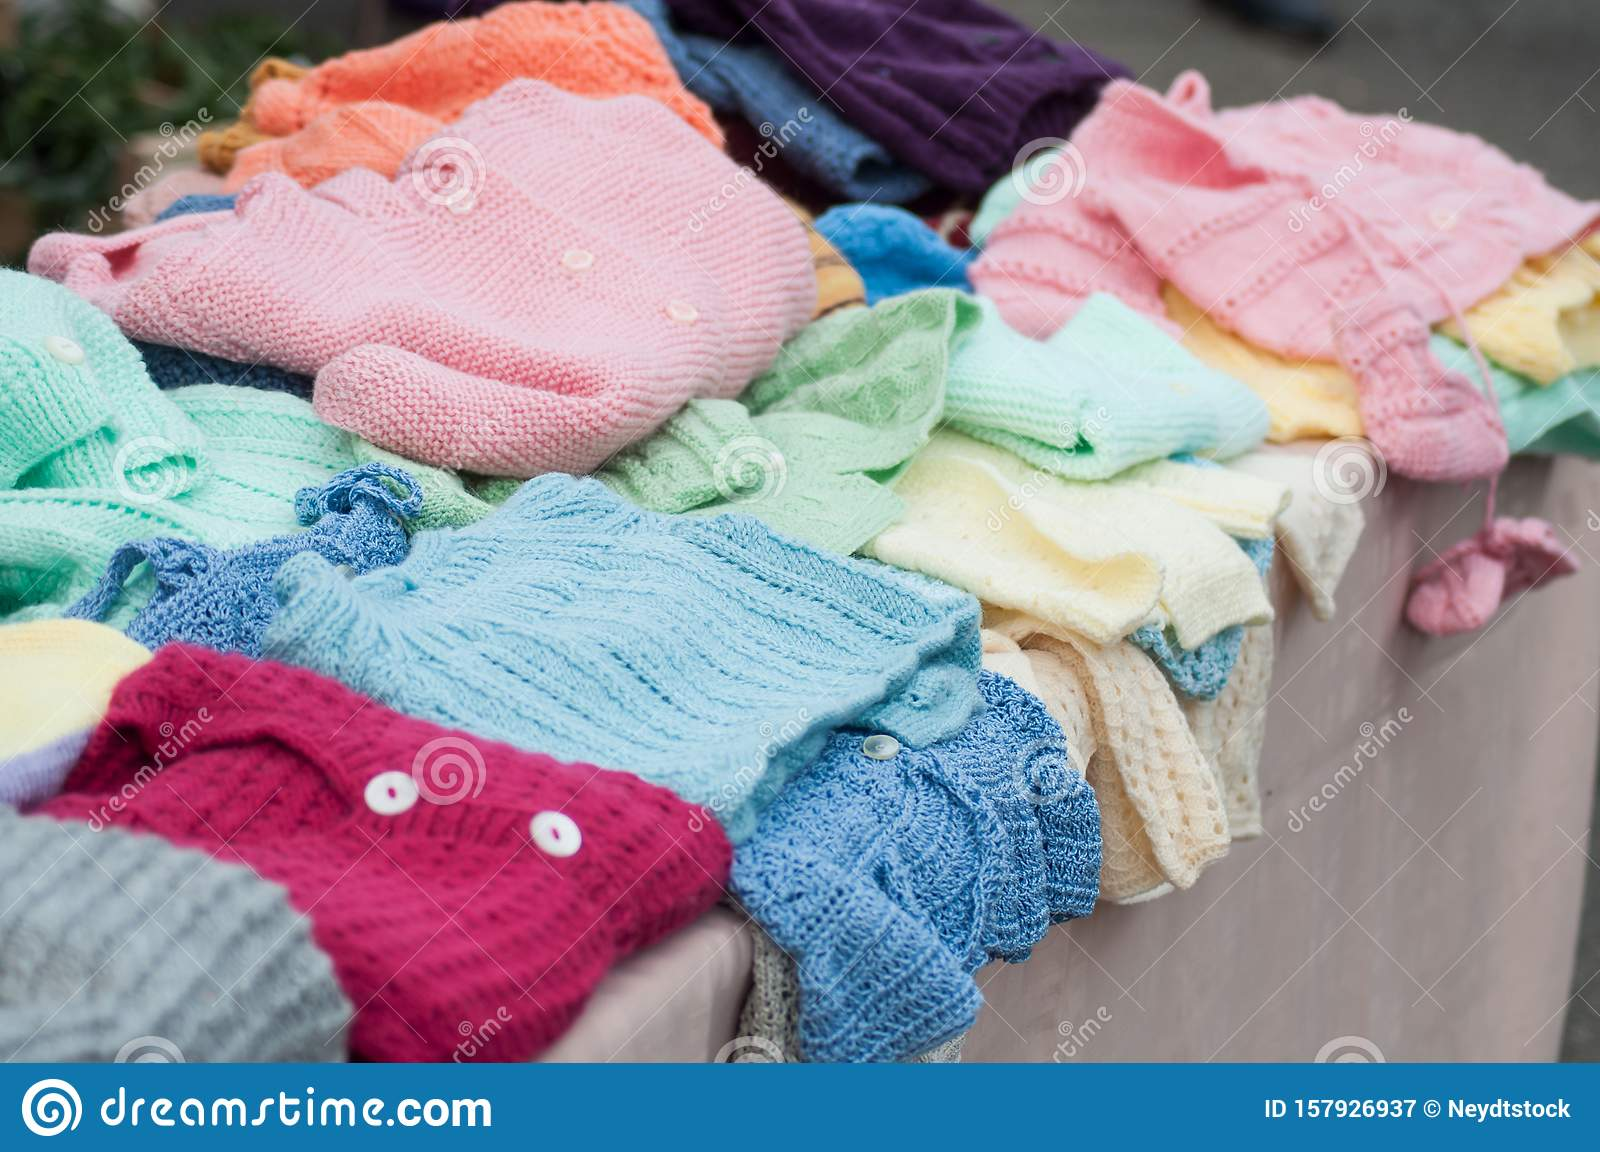 Woolen Baby Clothes Piles At Flea Market In The Street ...